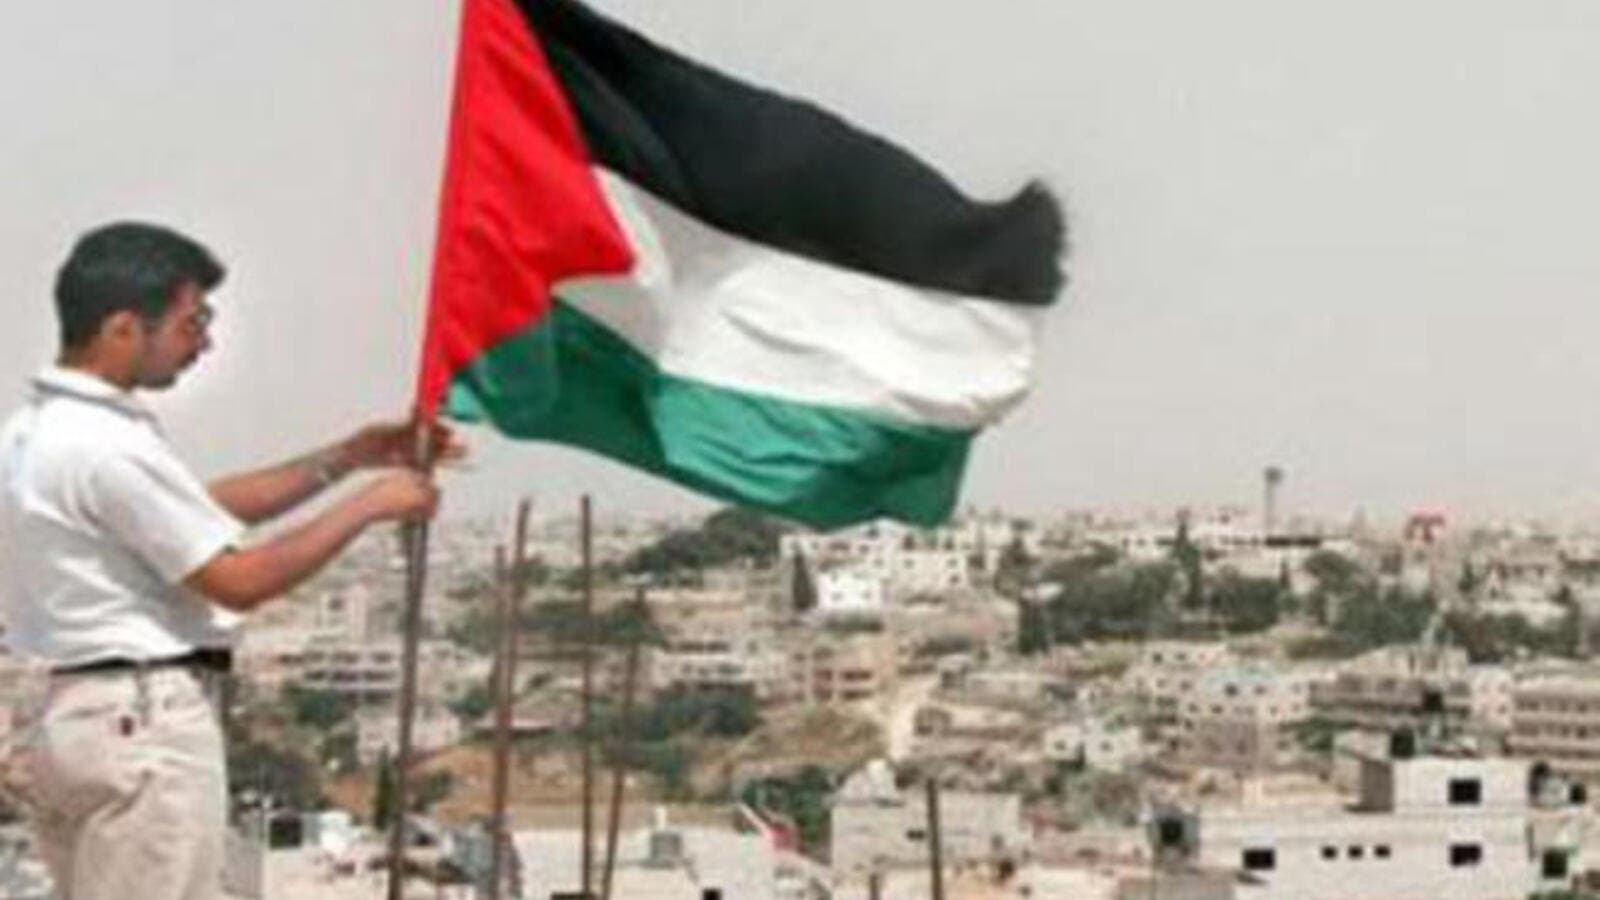 GDP in Palestine grew by 5.9 per cent in 2012 compared to 2011, new statistics reveal.